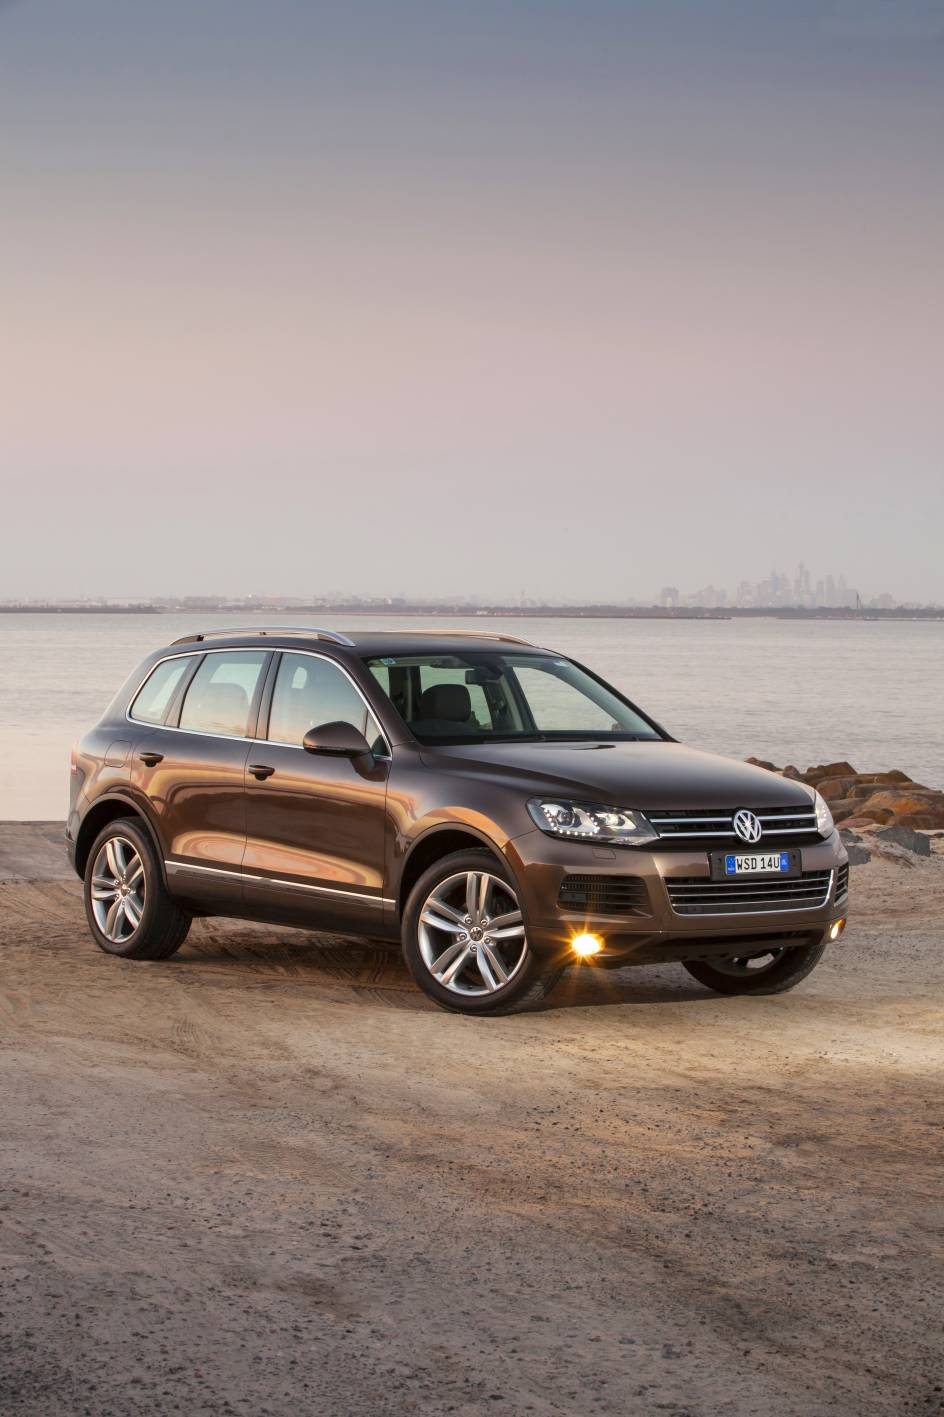 Impossible to justify the Volkswagen Touareg (above) - especially in light of VW's entrenched quality issues